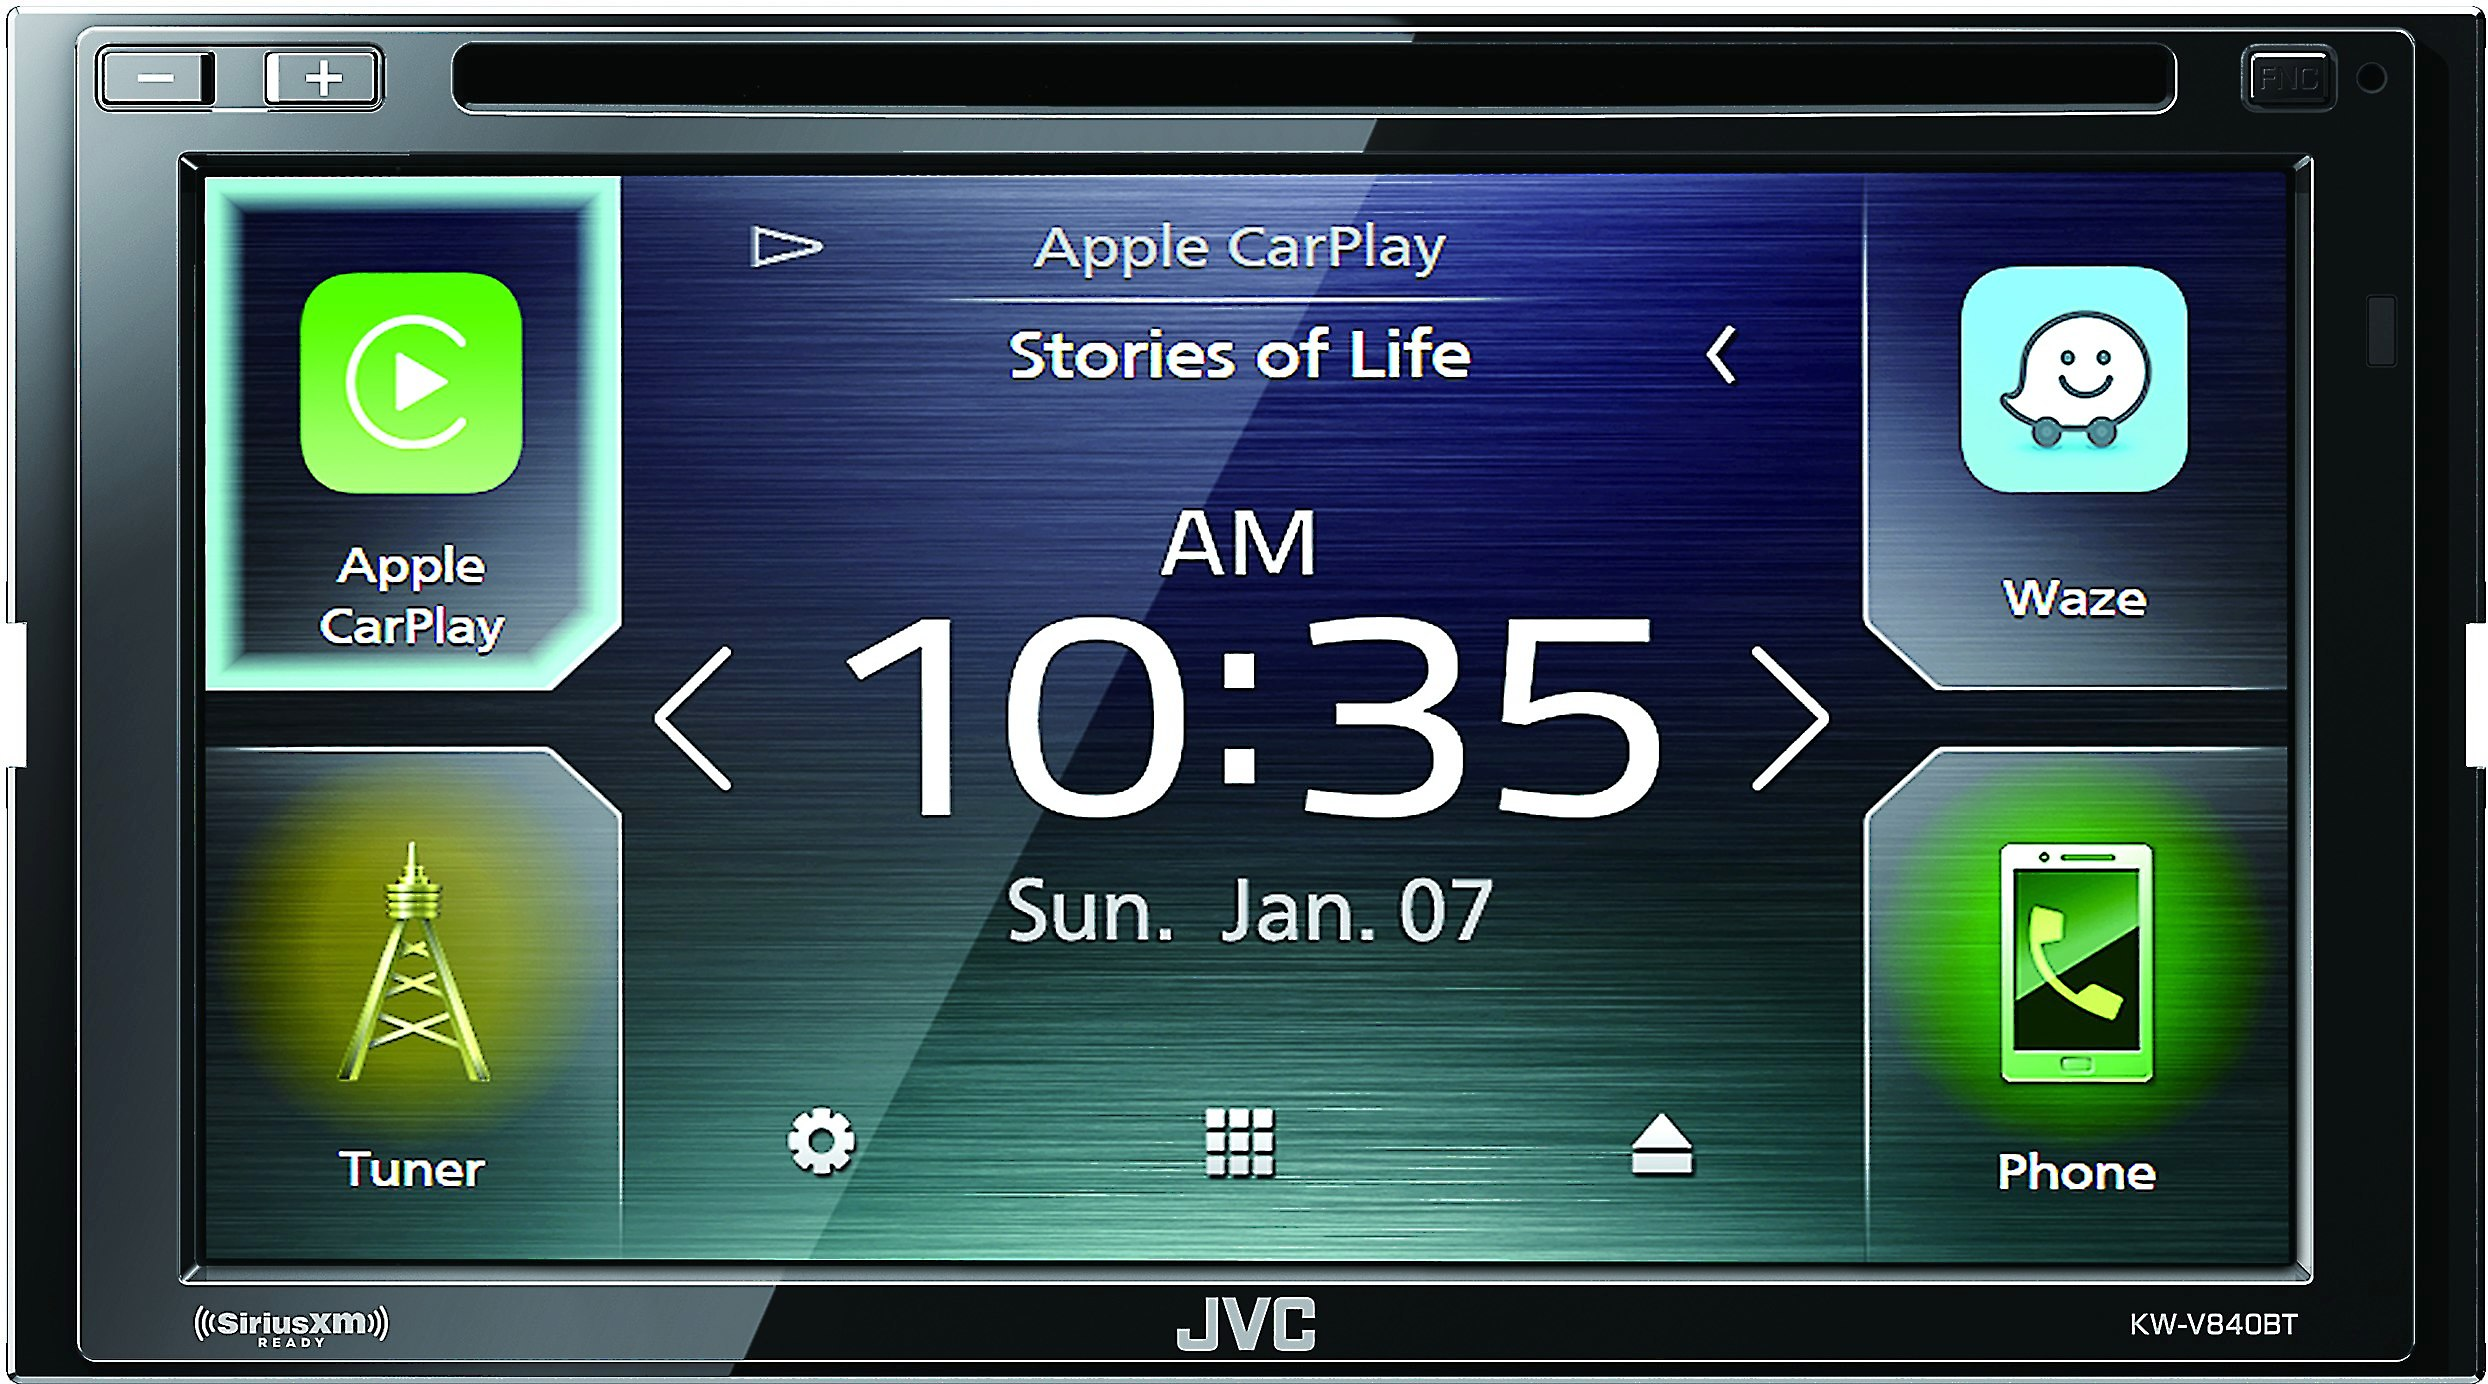 JVC KW-V640BT 6.8 Clear Resistive Touch Monitor//WebLink//Bluetooth //13-Band EQ//JVC Remote App KWV640BT